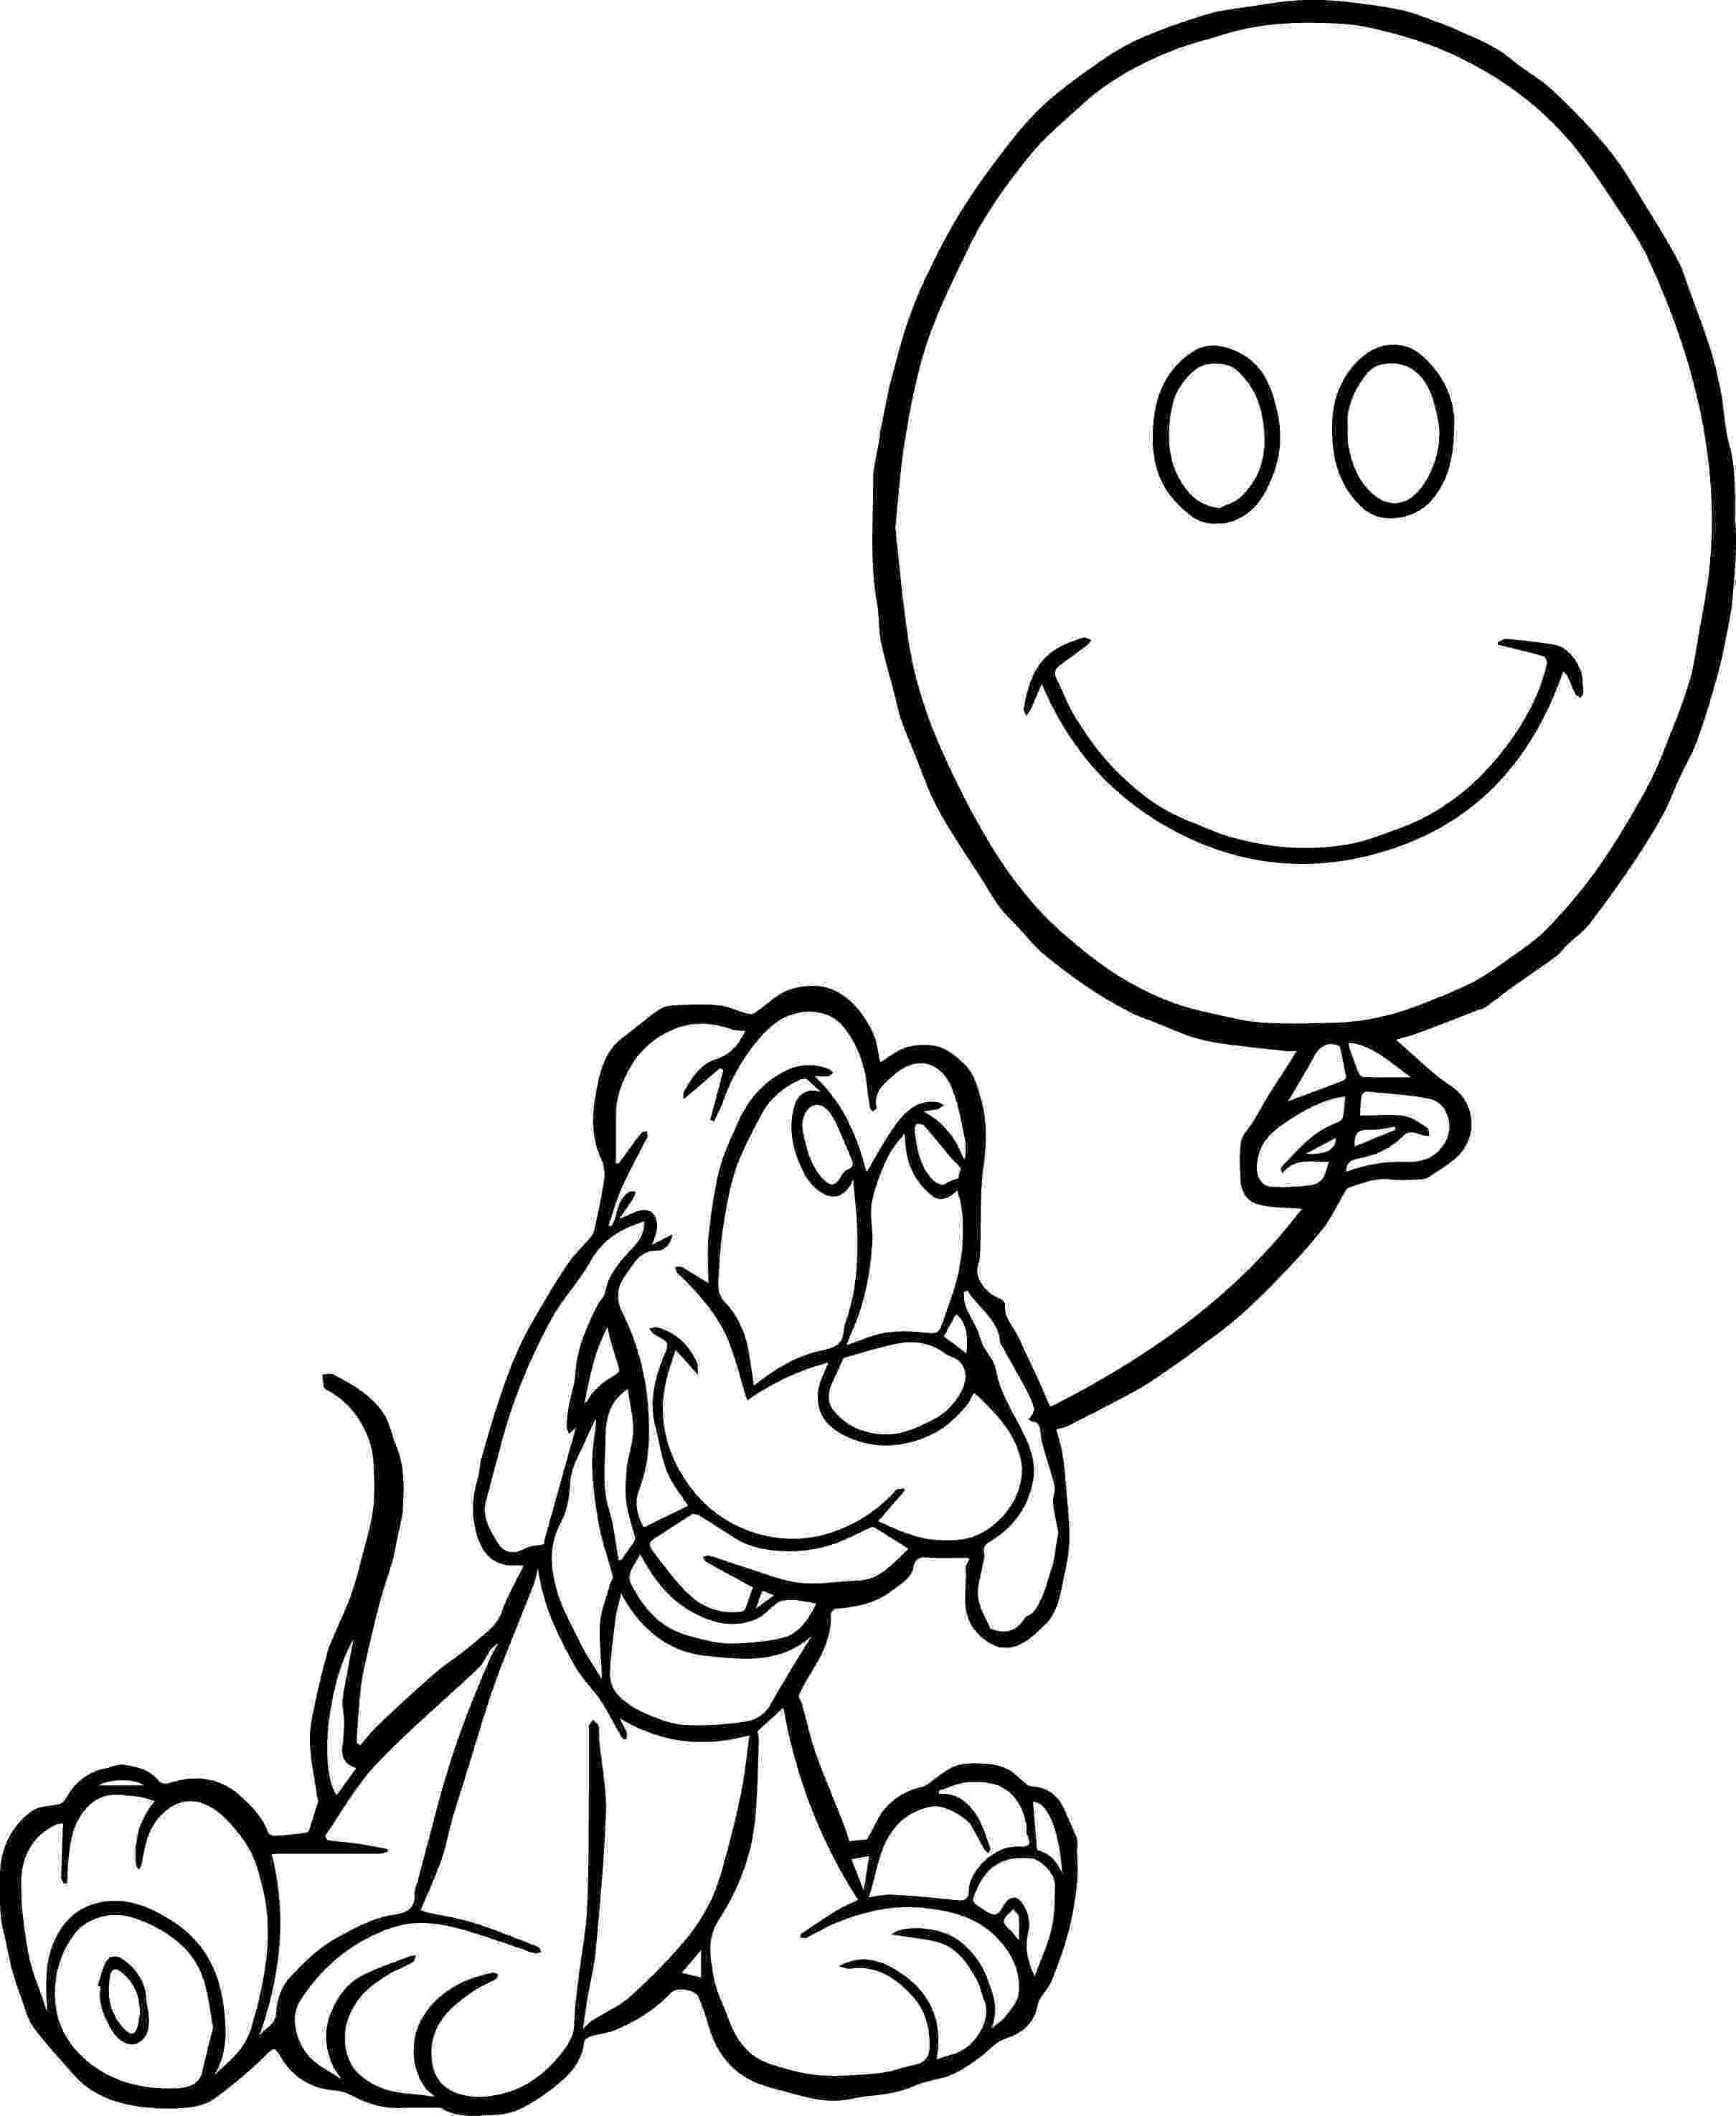 balloon coloring page balloon outline coloring home page coloring balloon